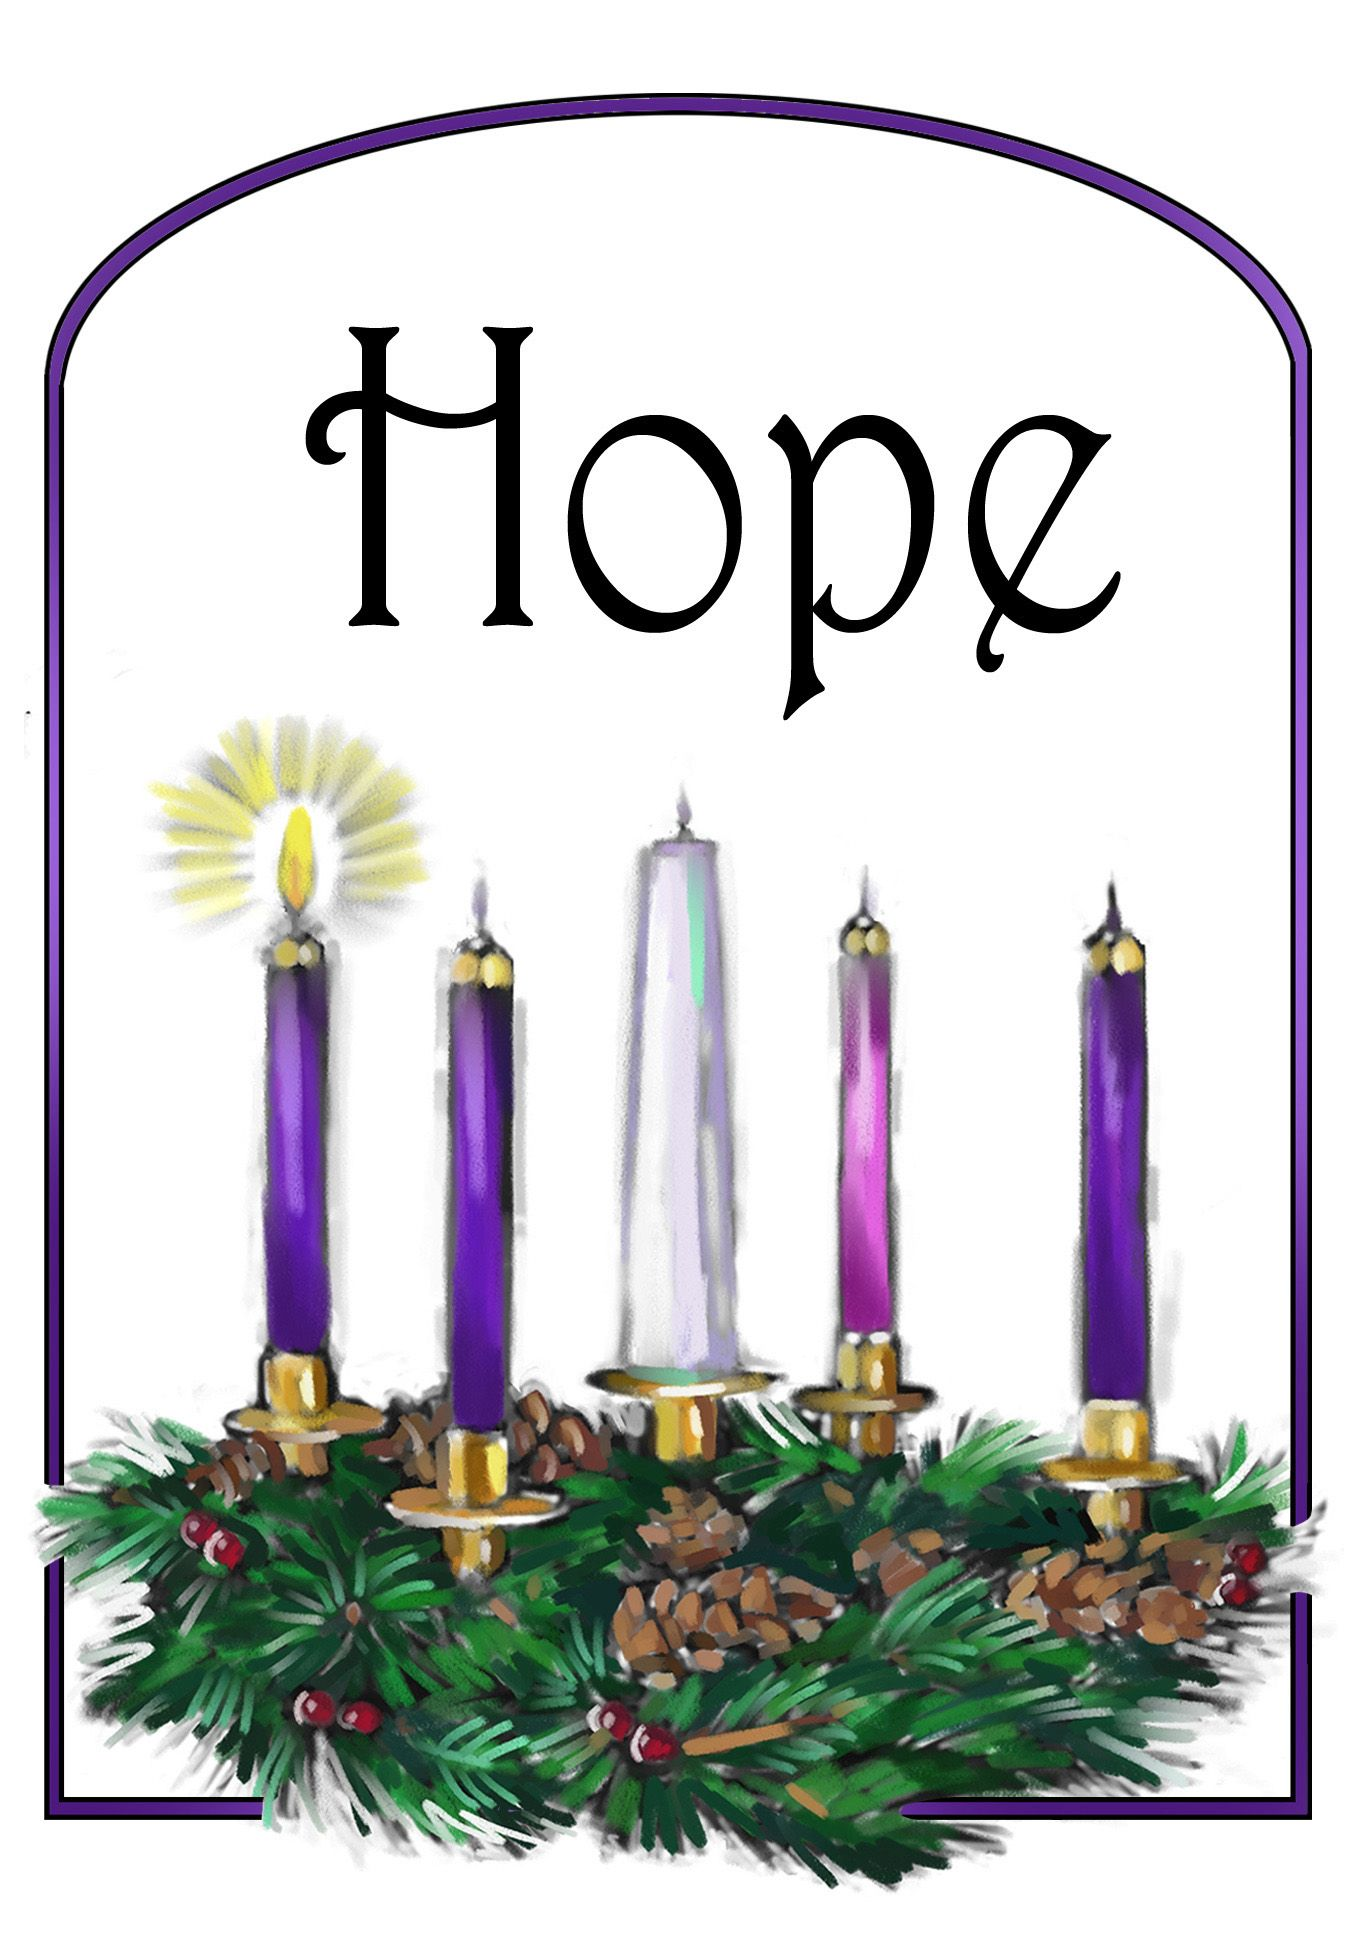 first week of advent candle oit - Google Search | Third sunday of advent, Christmas advent, Advent prayers